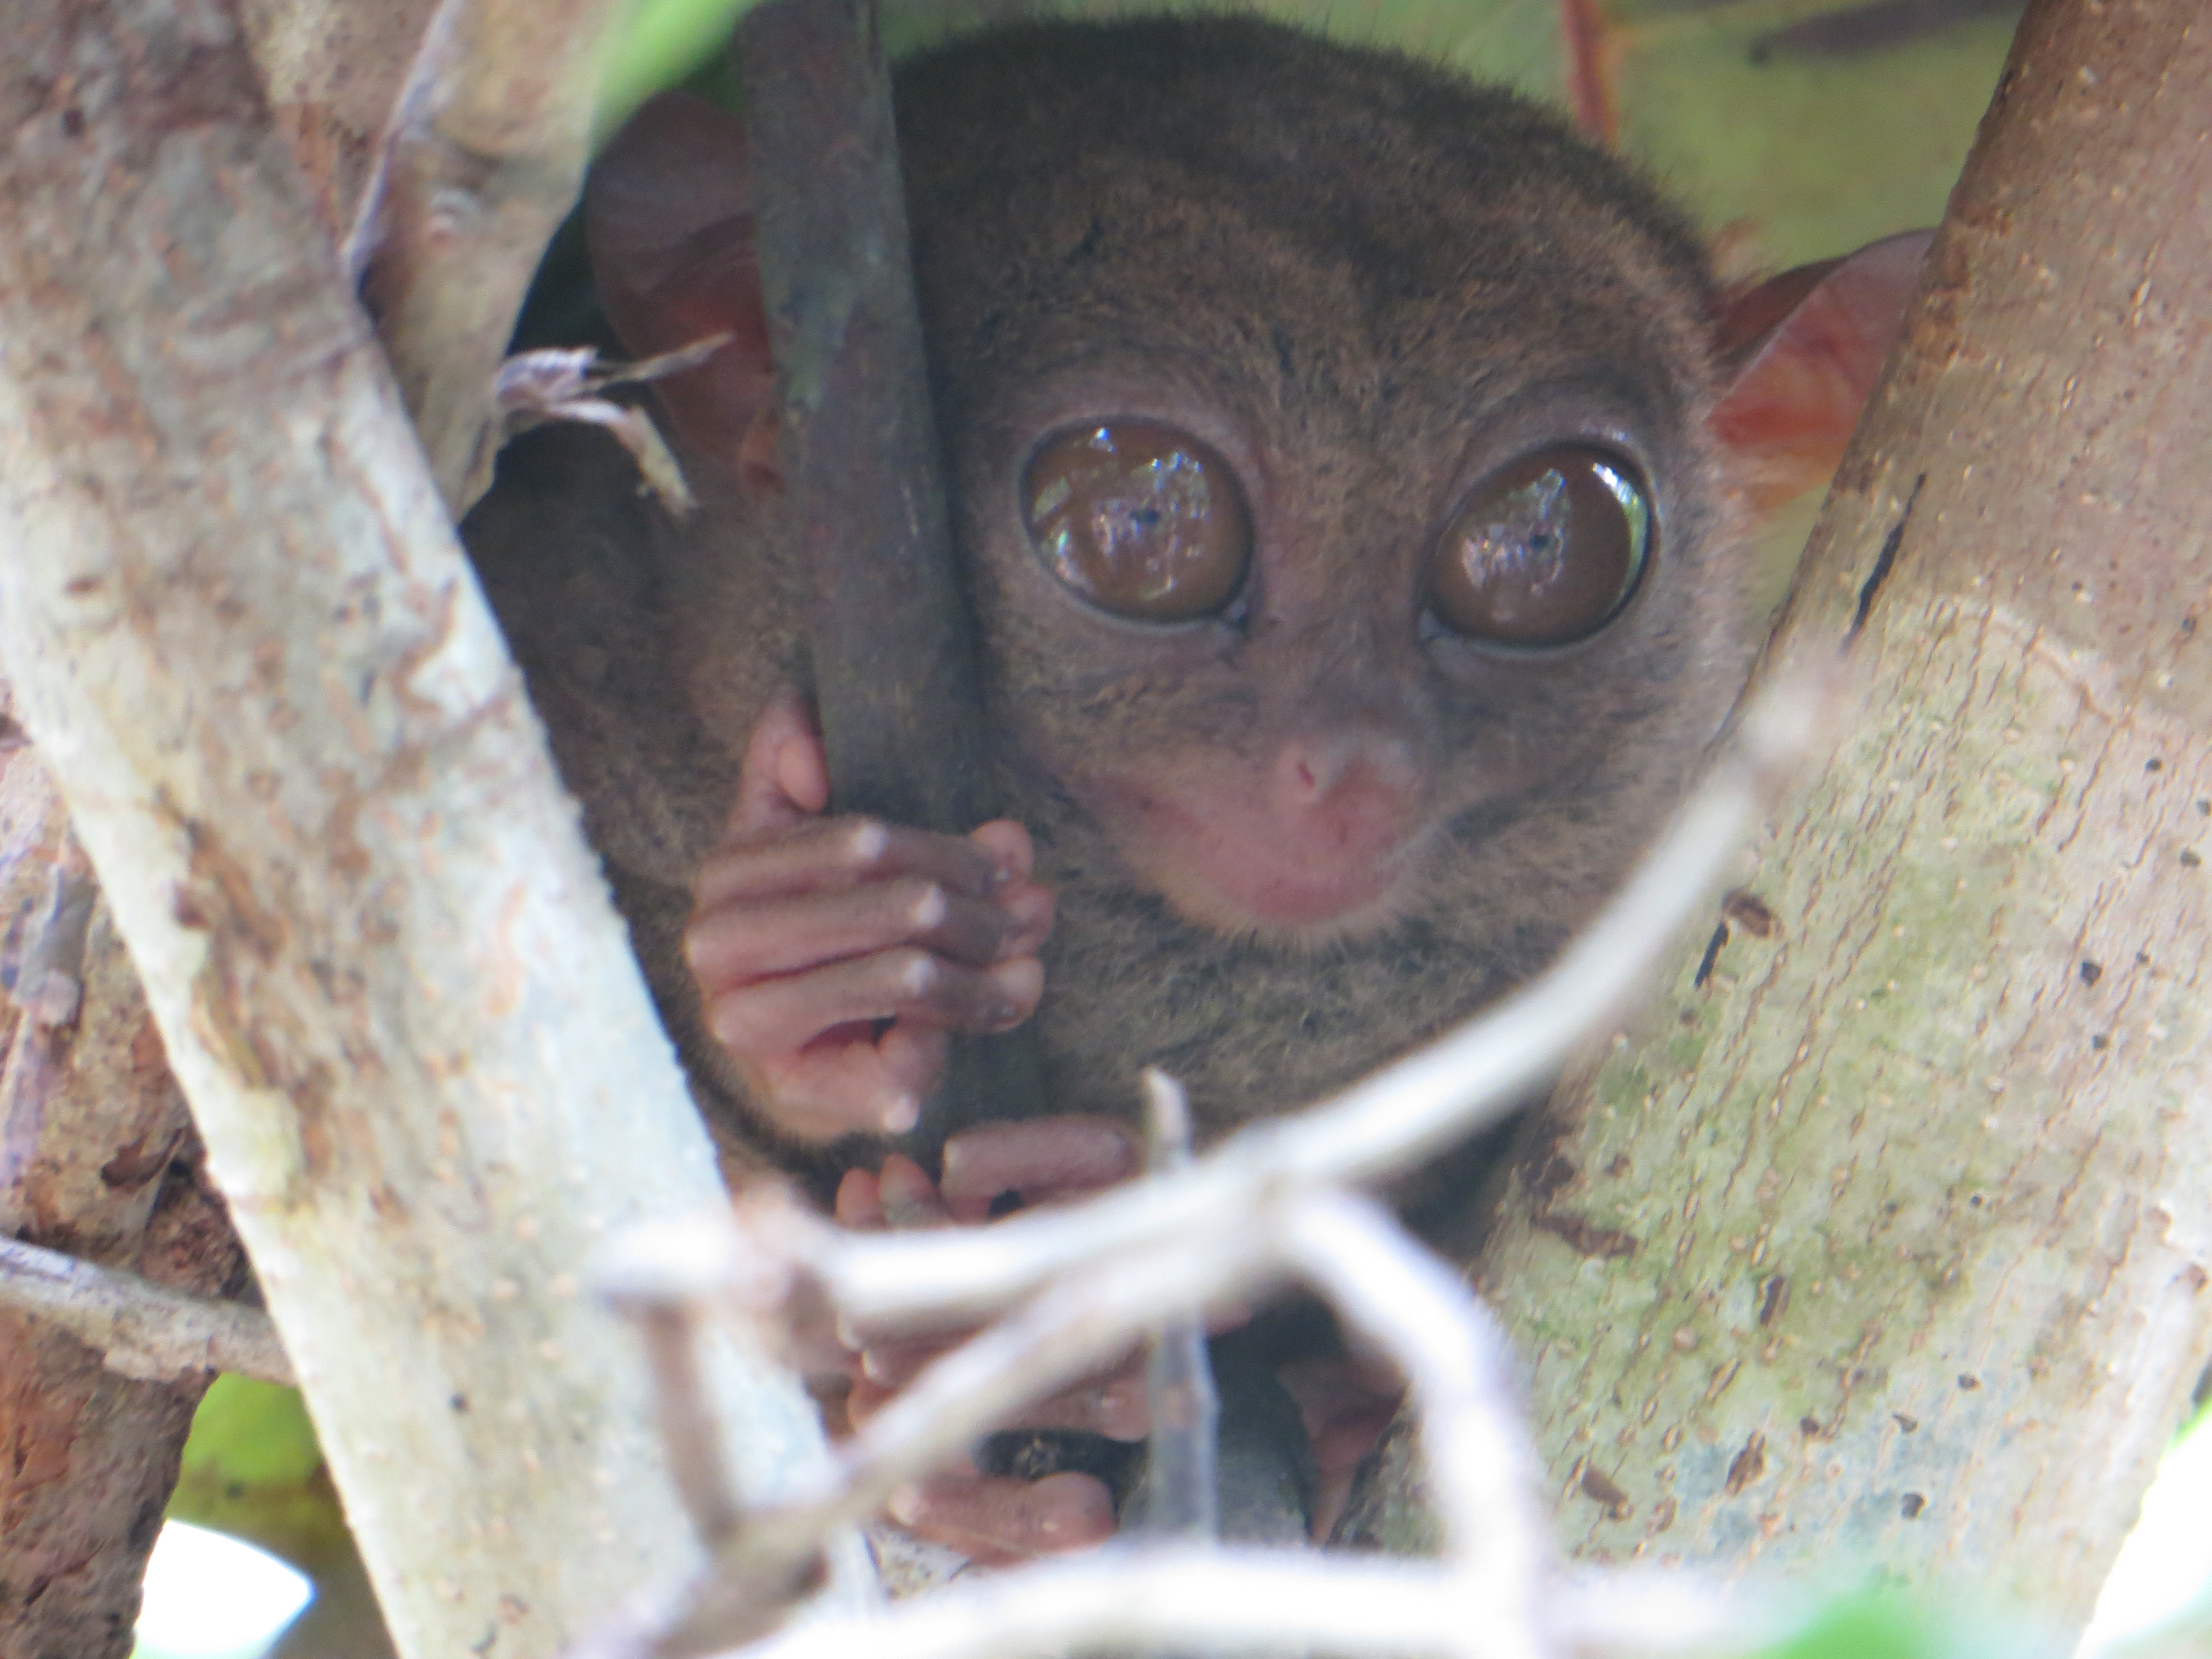 Tarsier - smallest monkey in the world